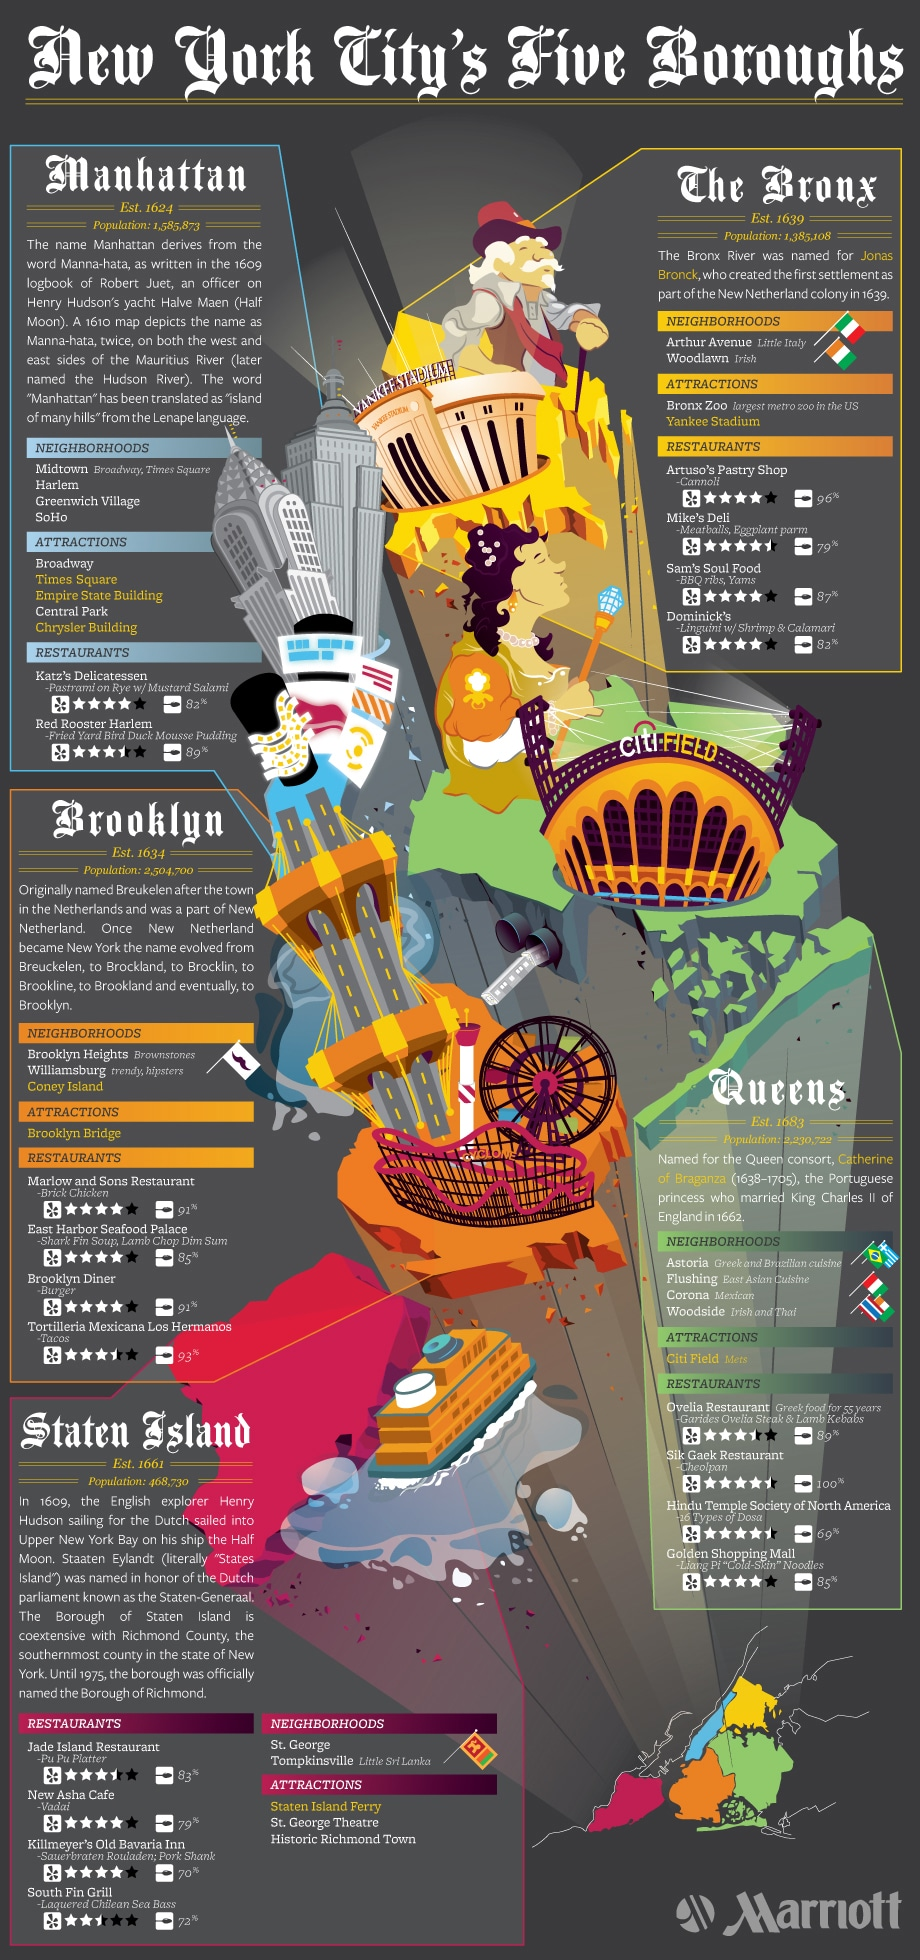 Marriott NYC infographic